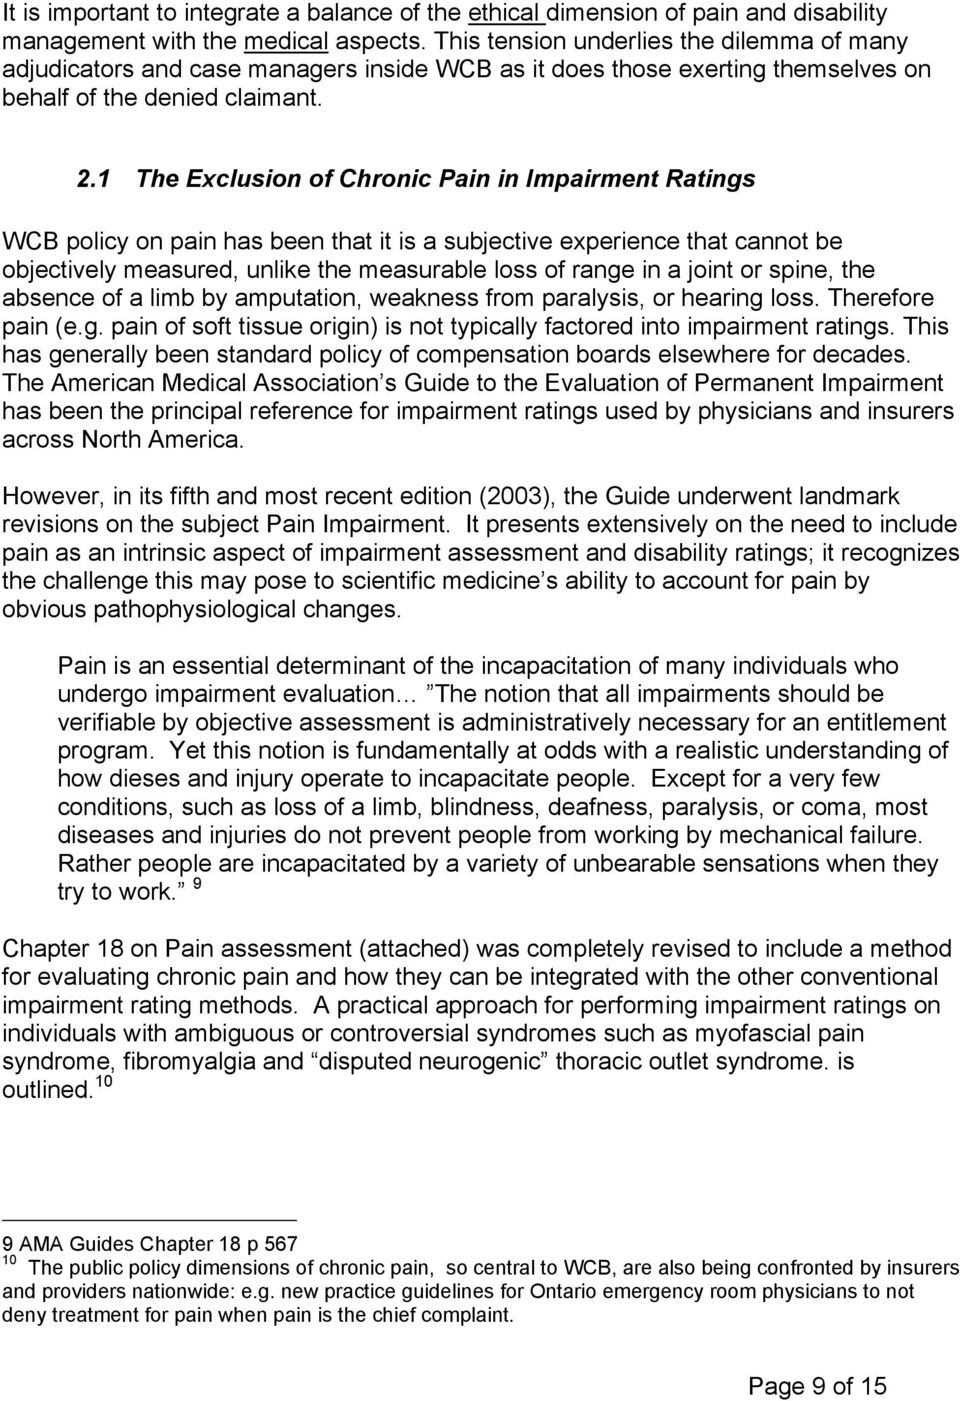 1 The Exclusion of Chronic Pain in Impairment Ratings WCB policy on pain has been that it is a subjective experience that cannot be objectively measured, unlike the measurable loss of range in a